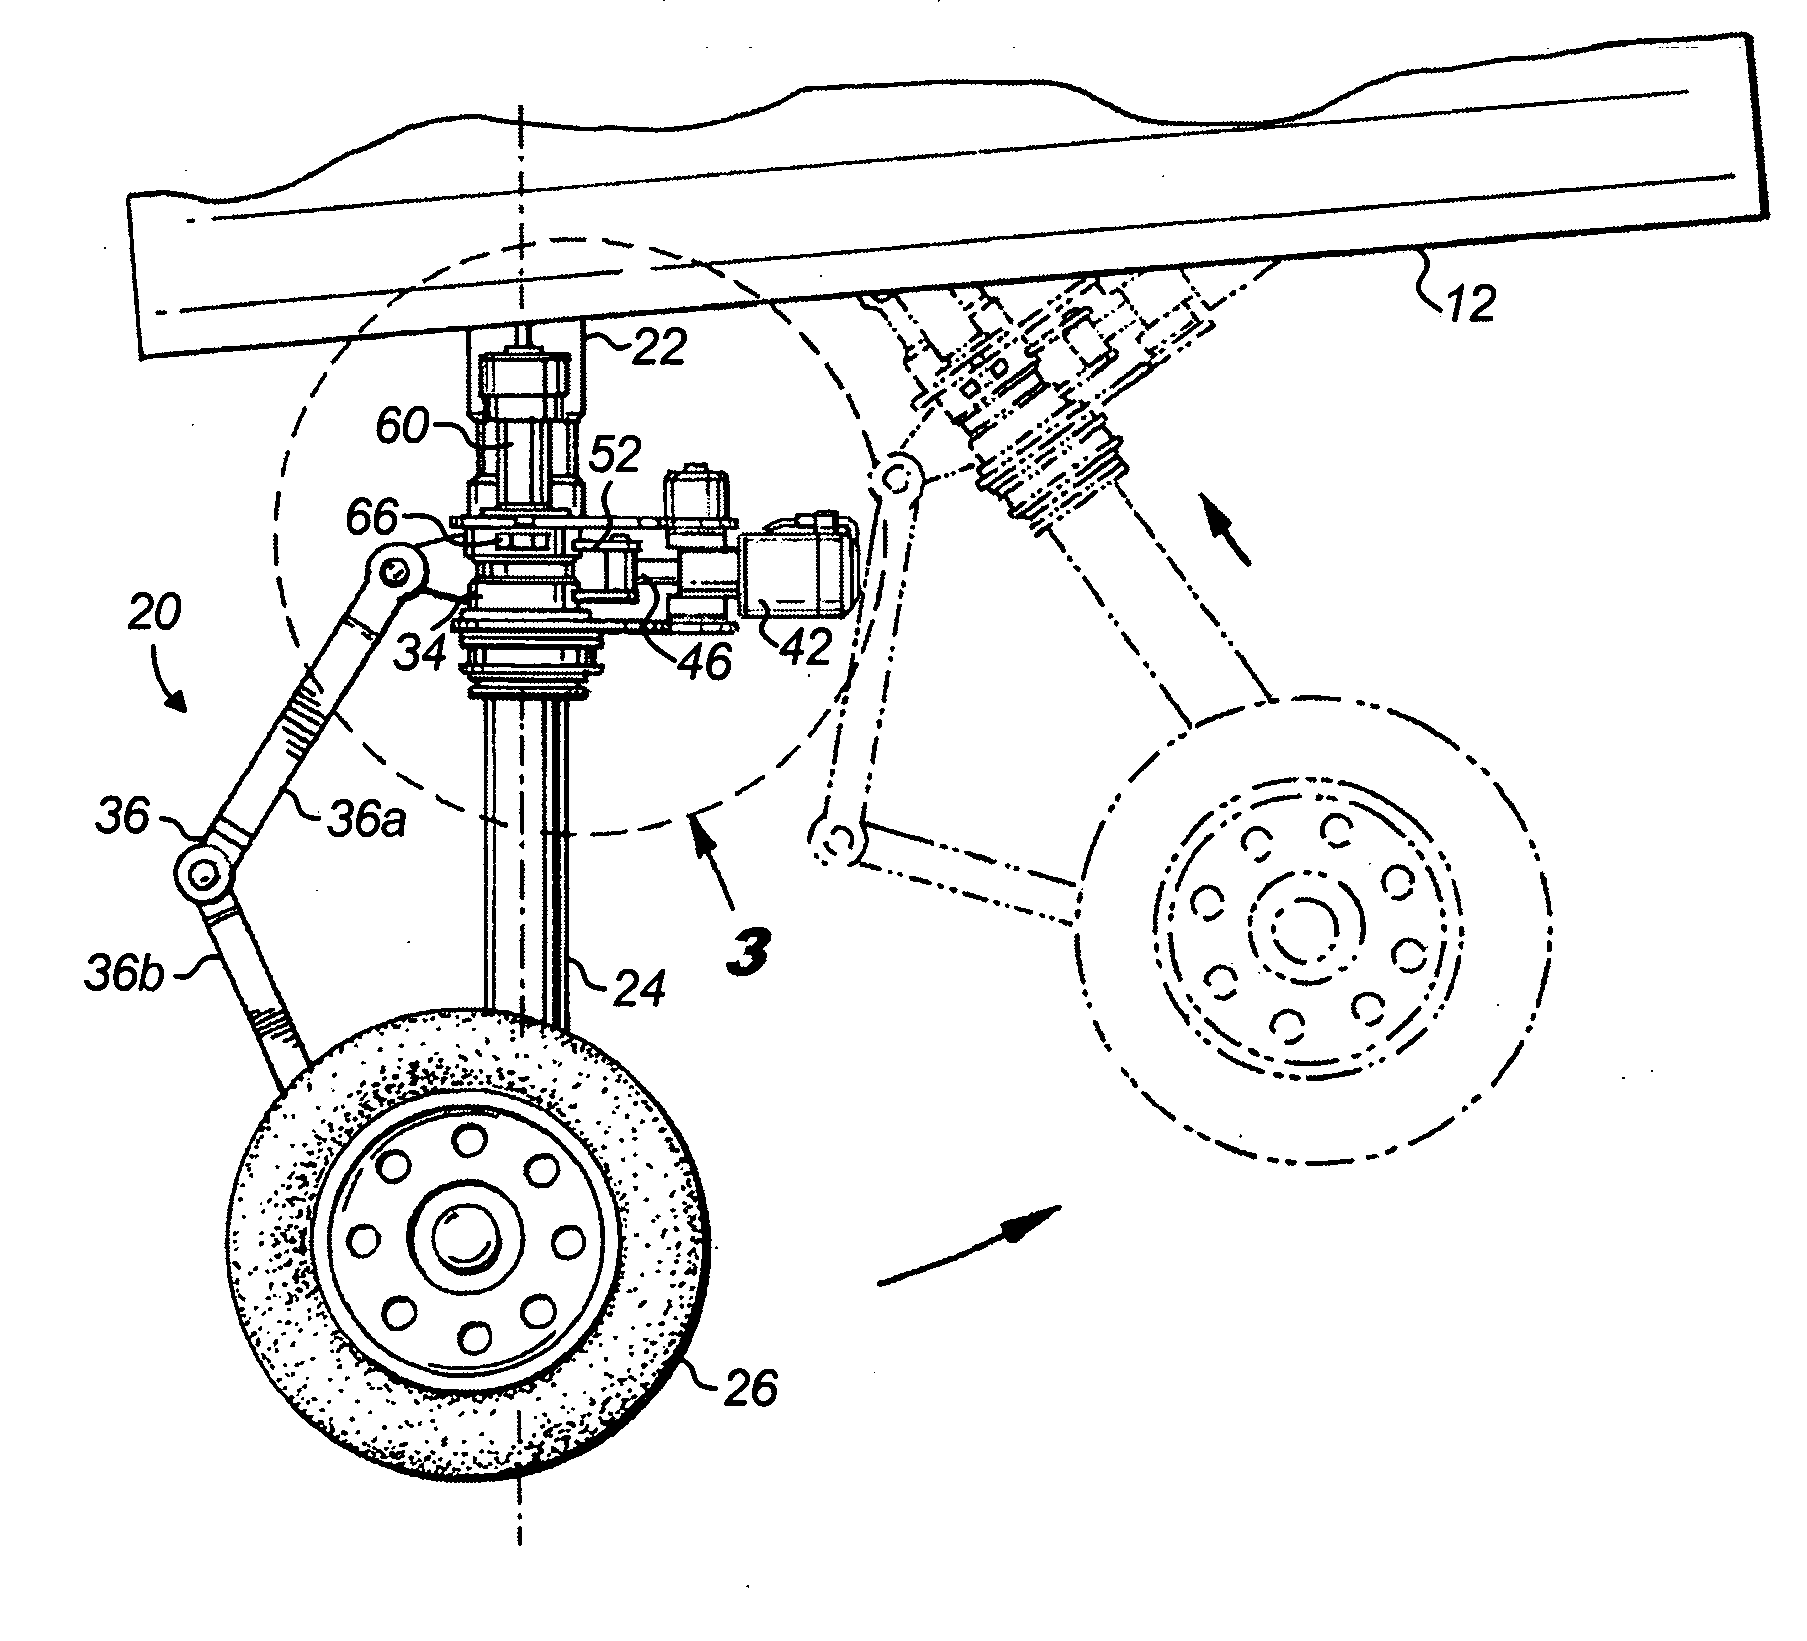 Brevet US20120187239 - Steering collar locking mechanism